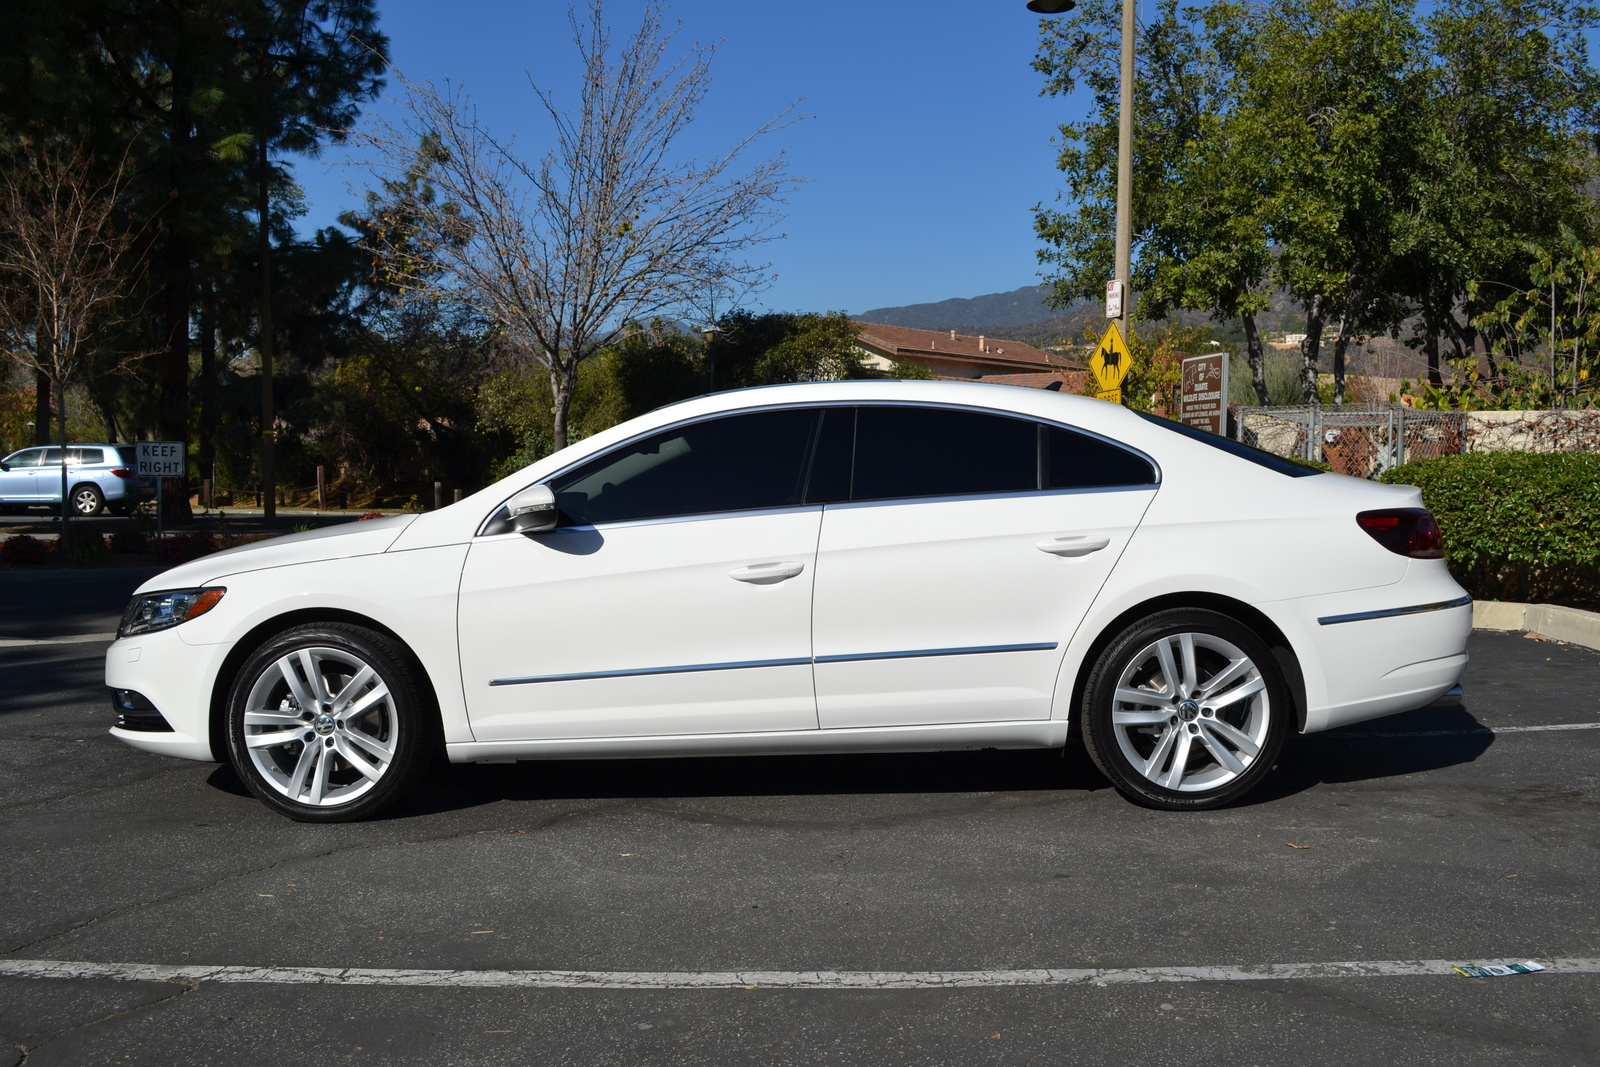 2014 Volkswagen CC Executive picture